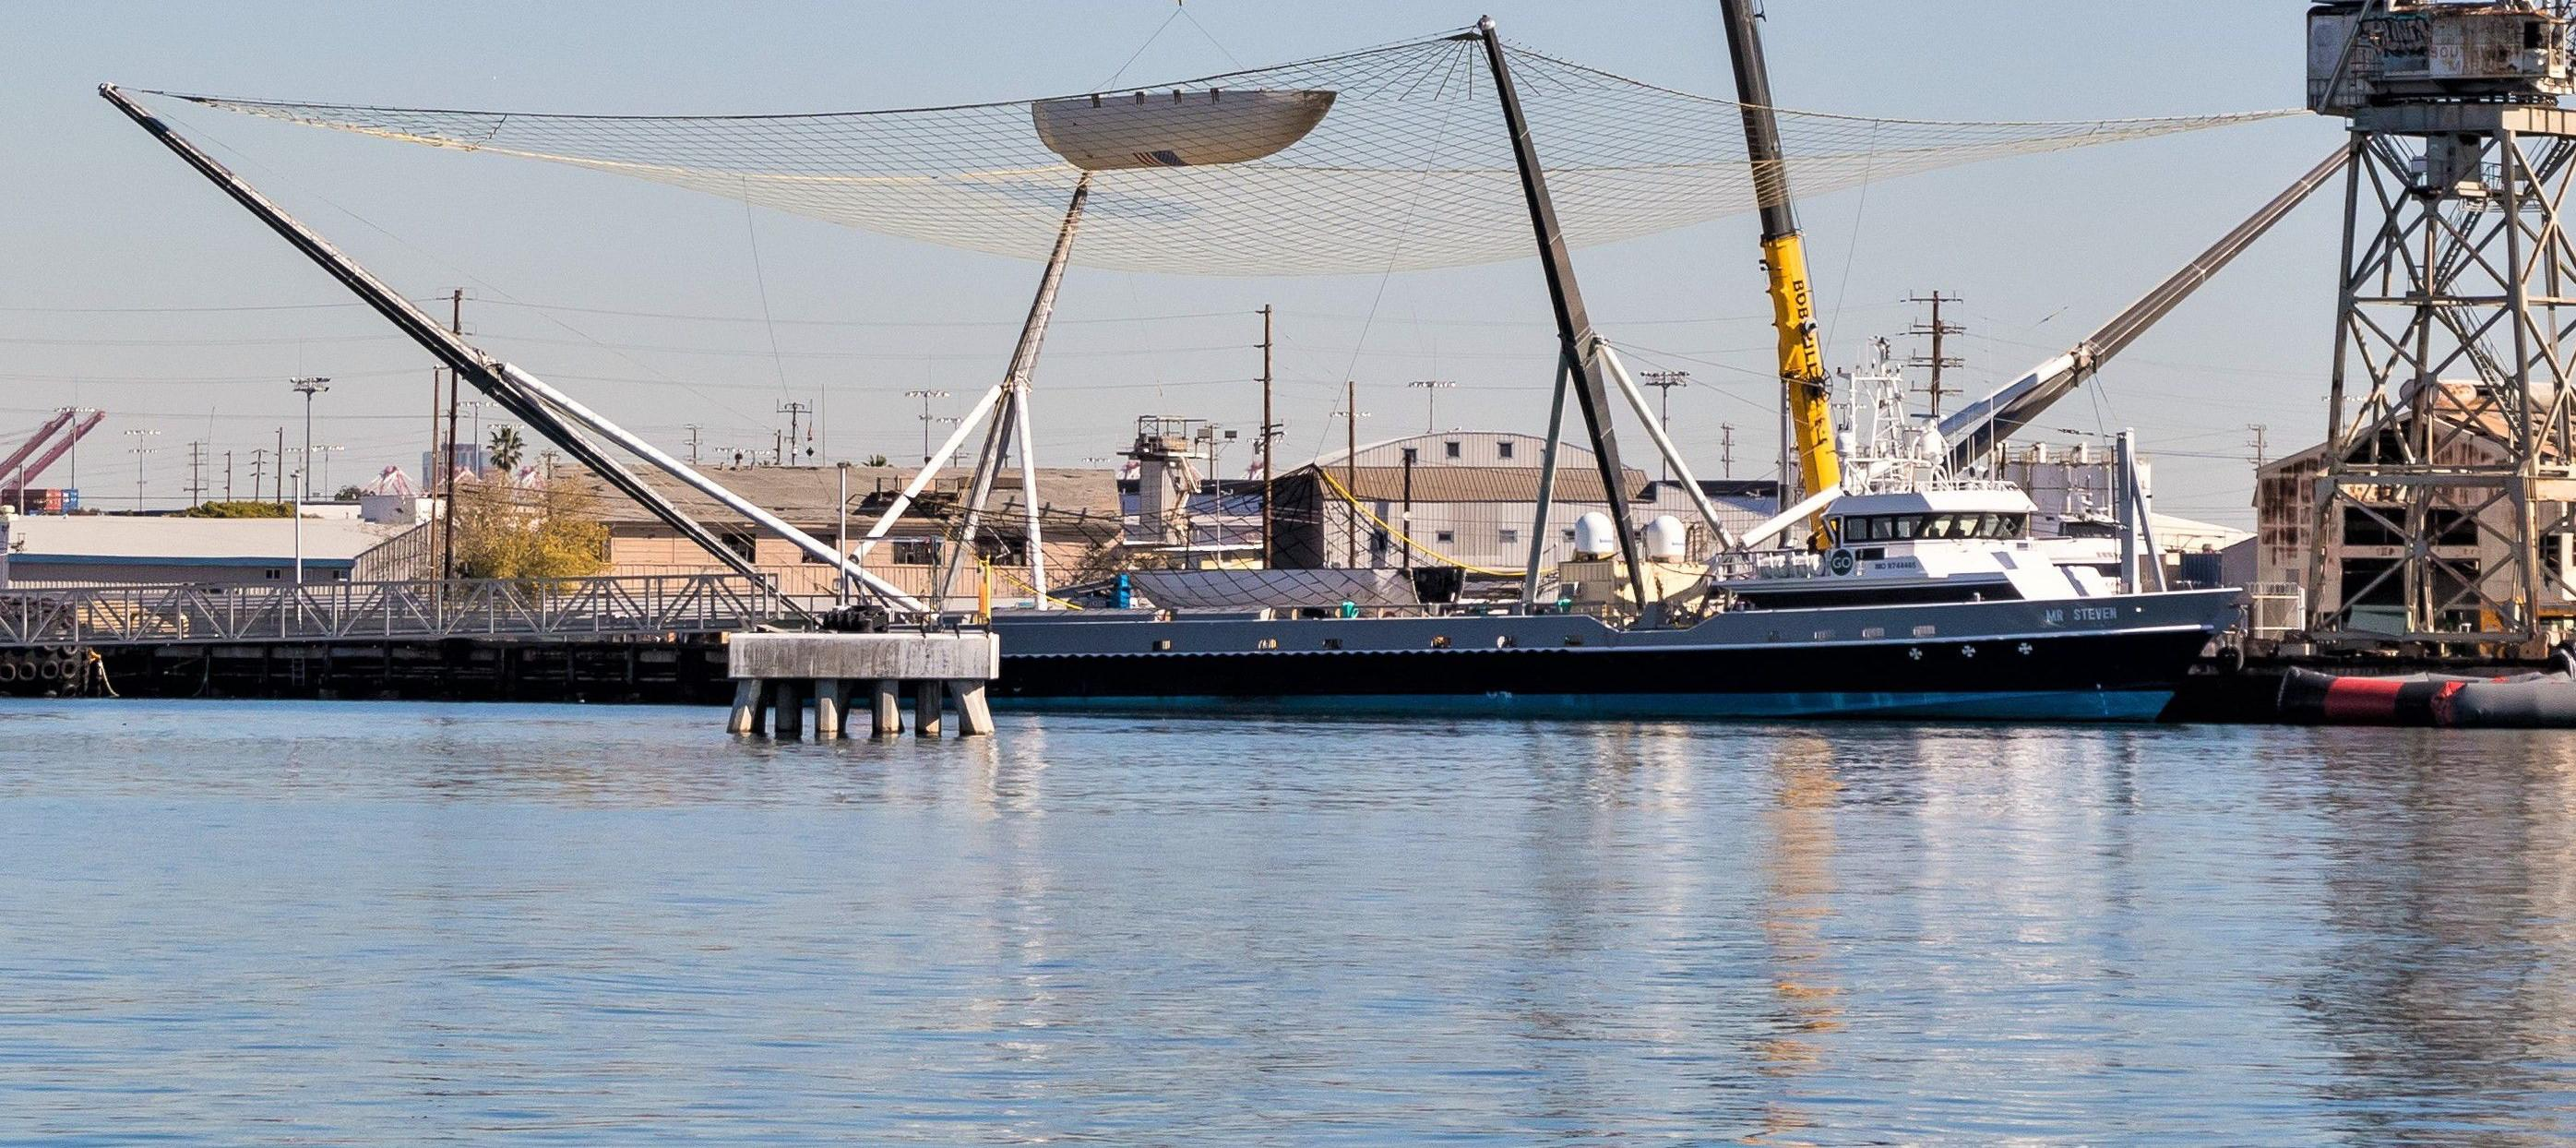 Spacex Isn T Giving Up On Catching Rocket Fairings Boat